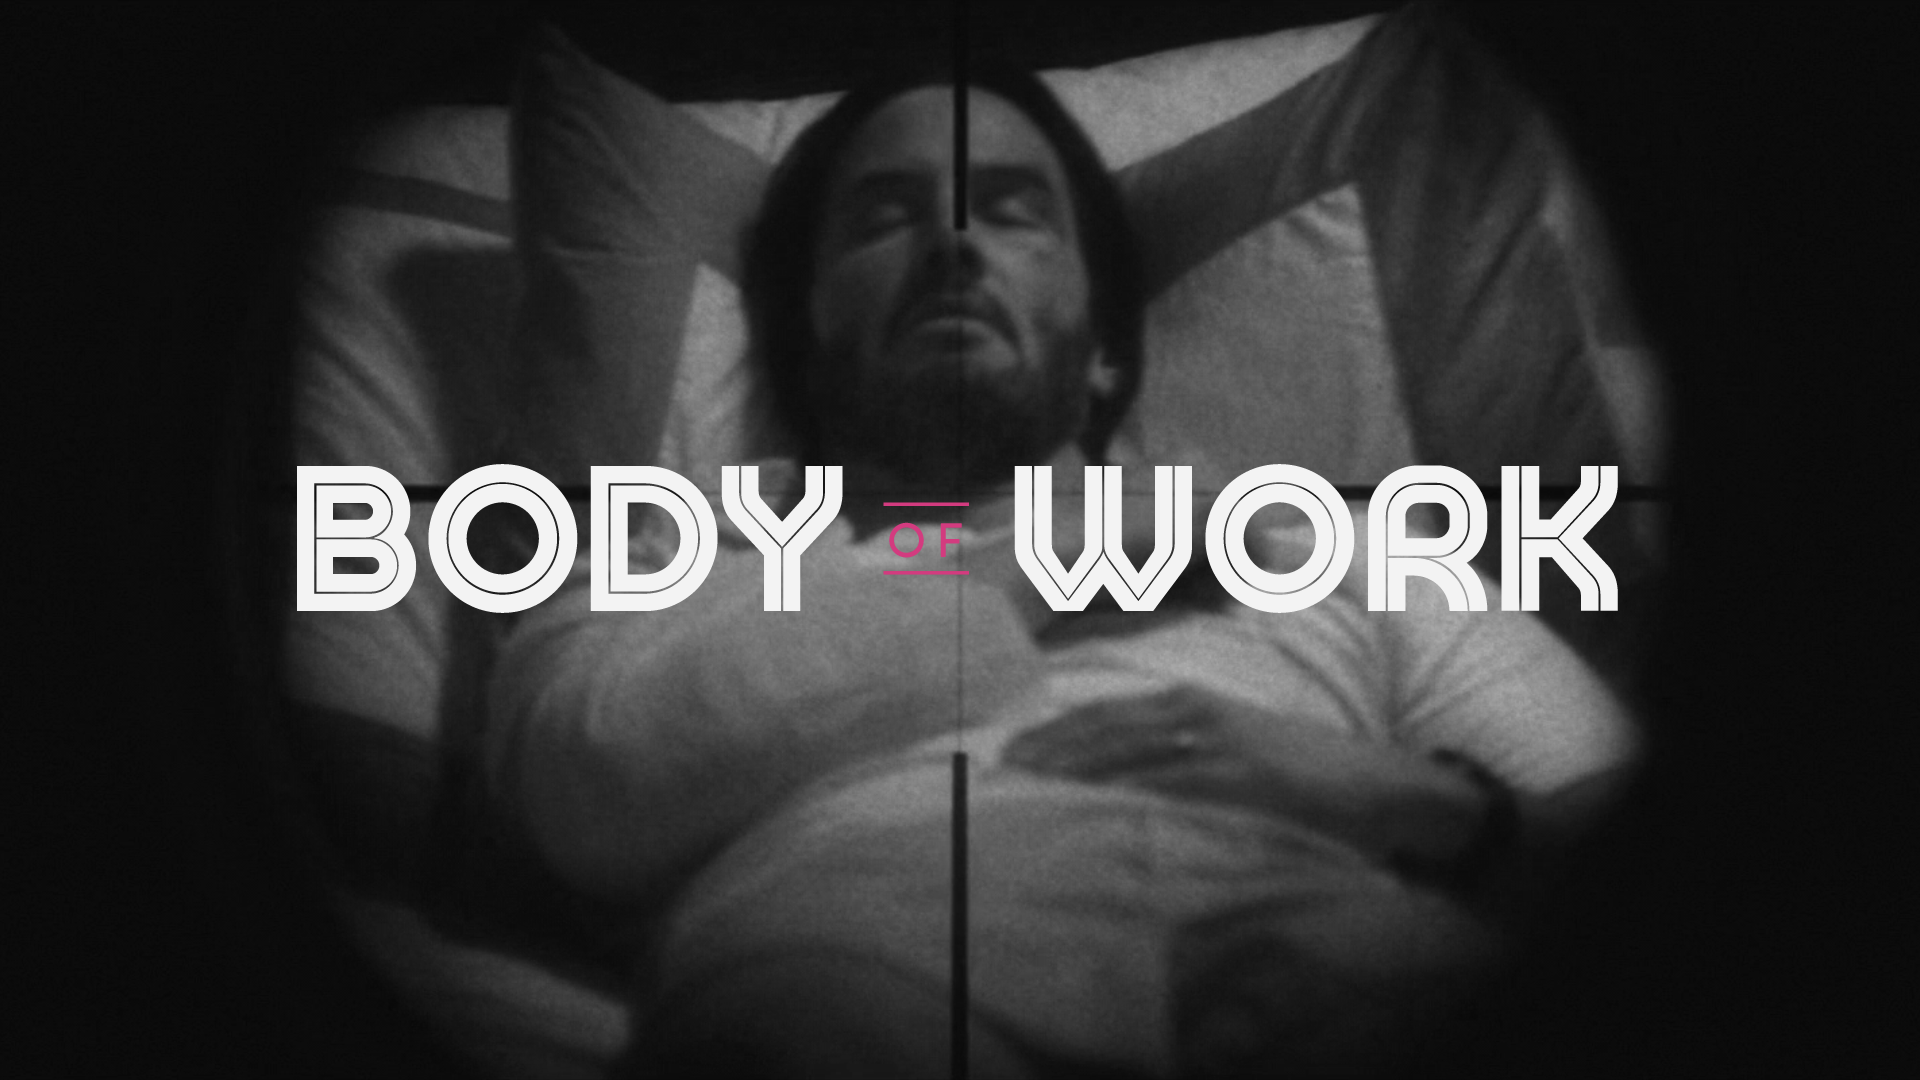 Bodyofwork keanu reeves final large thumbnail 3 override